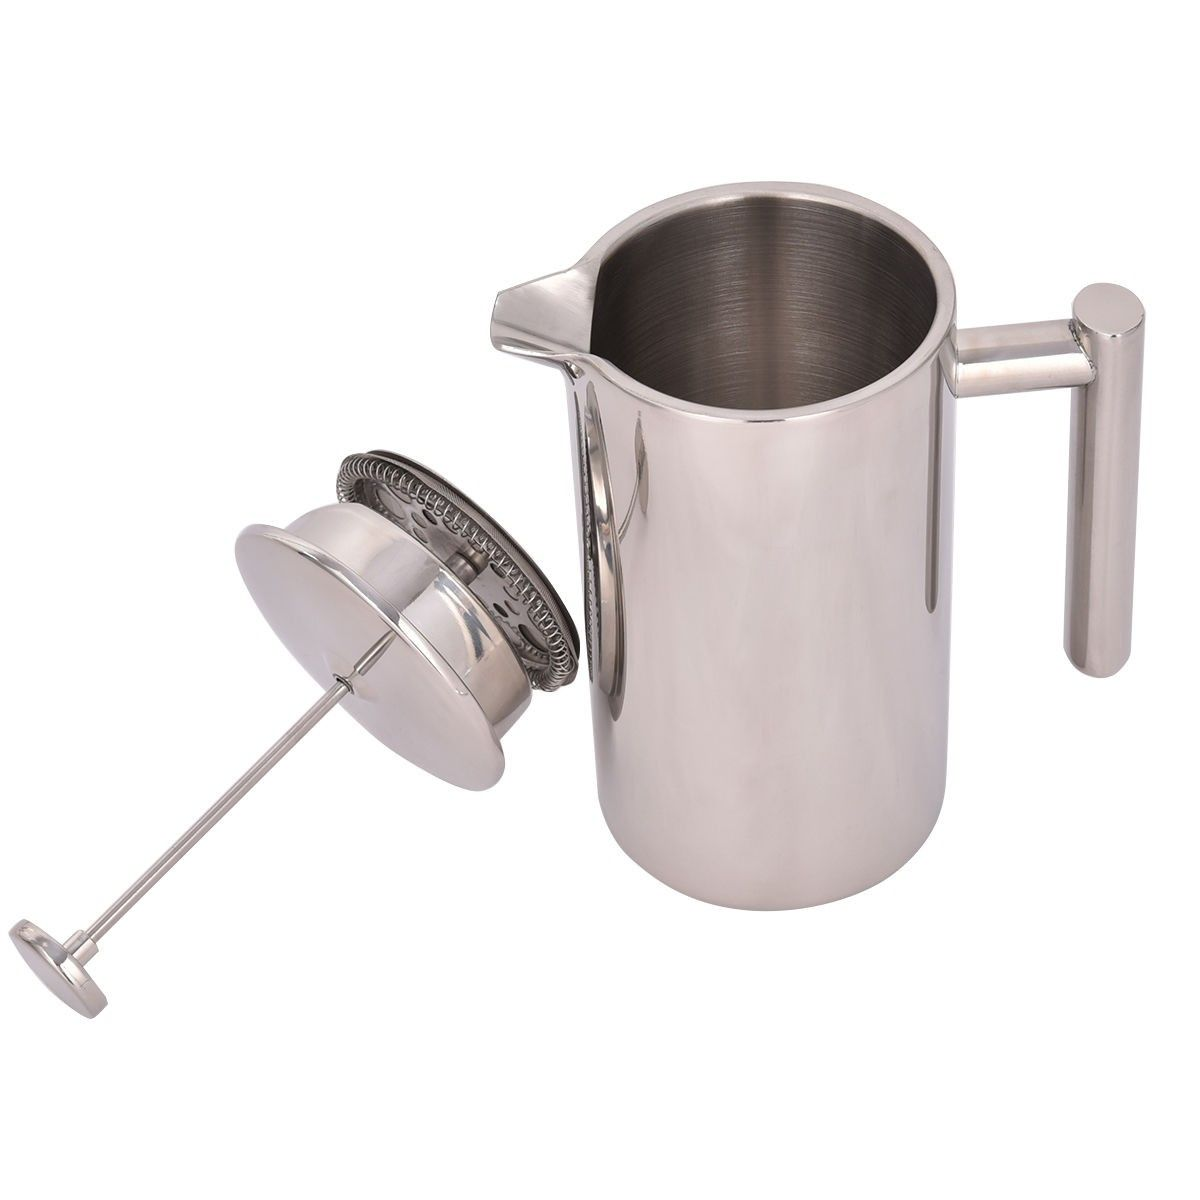 34 oz double wall stainless steel coffee plunger 8cup